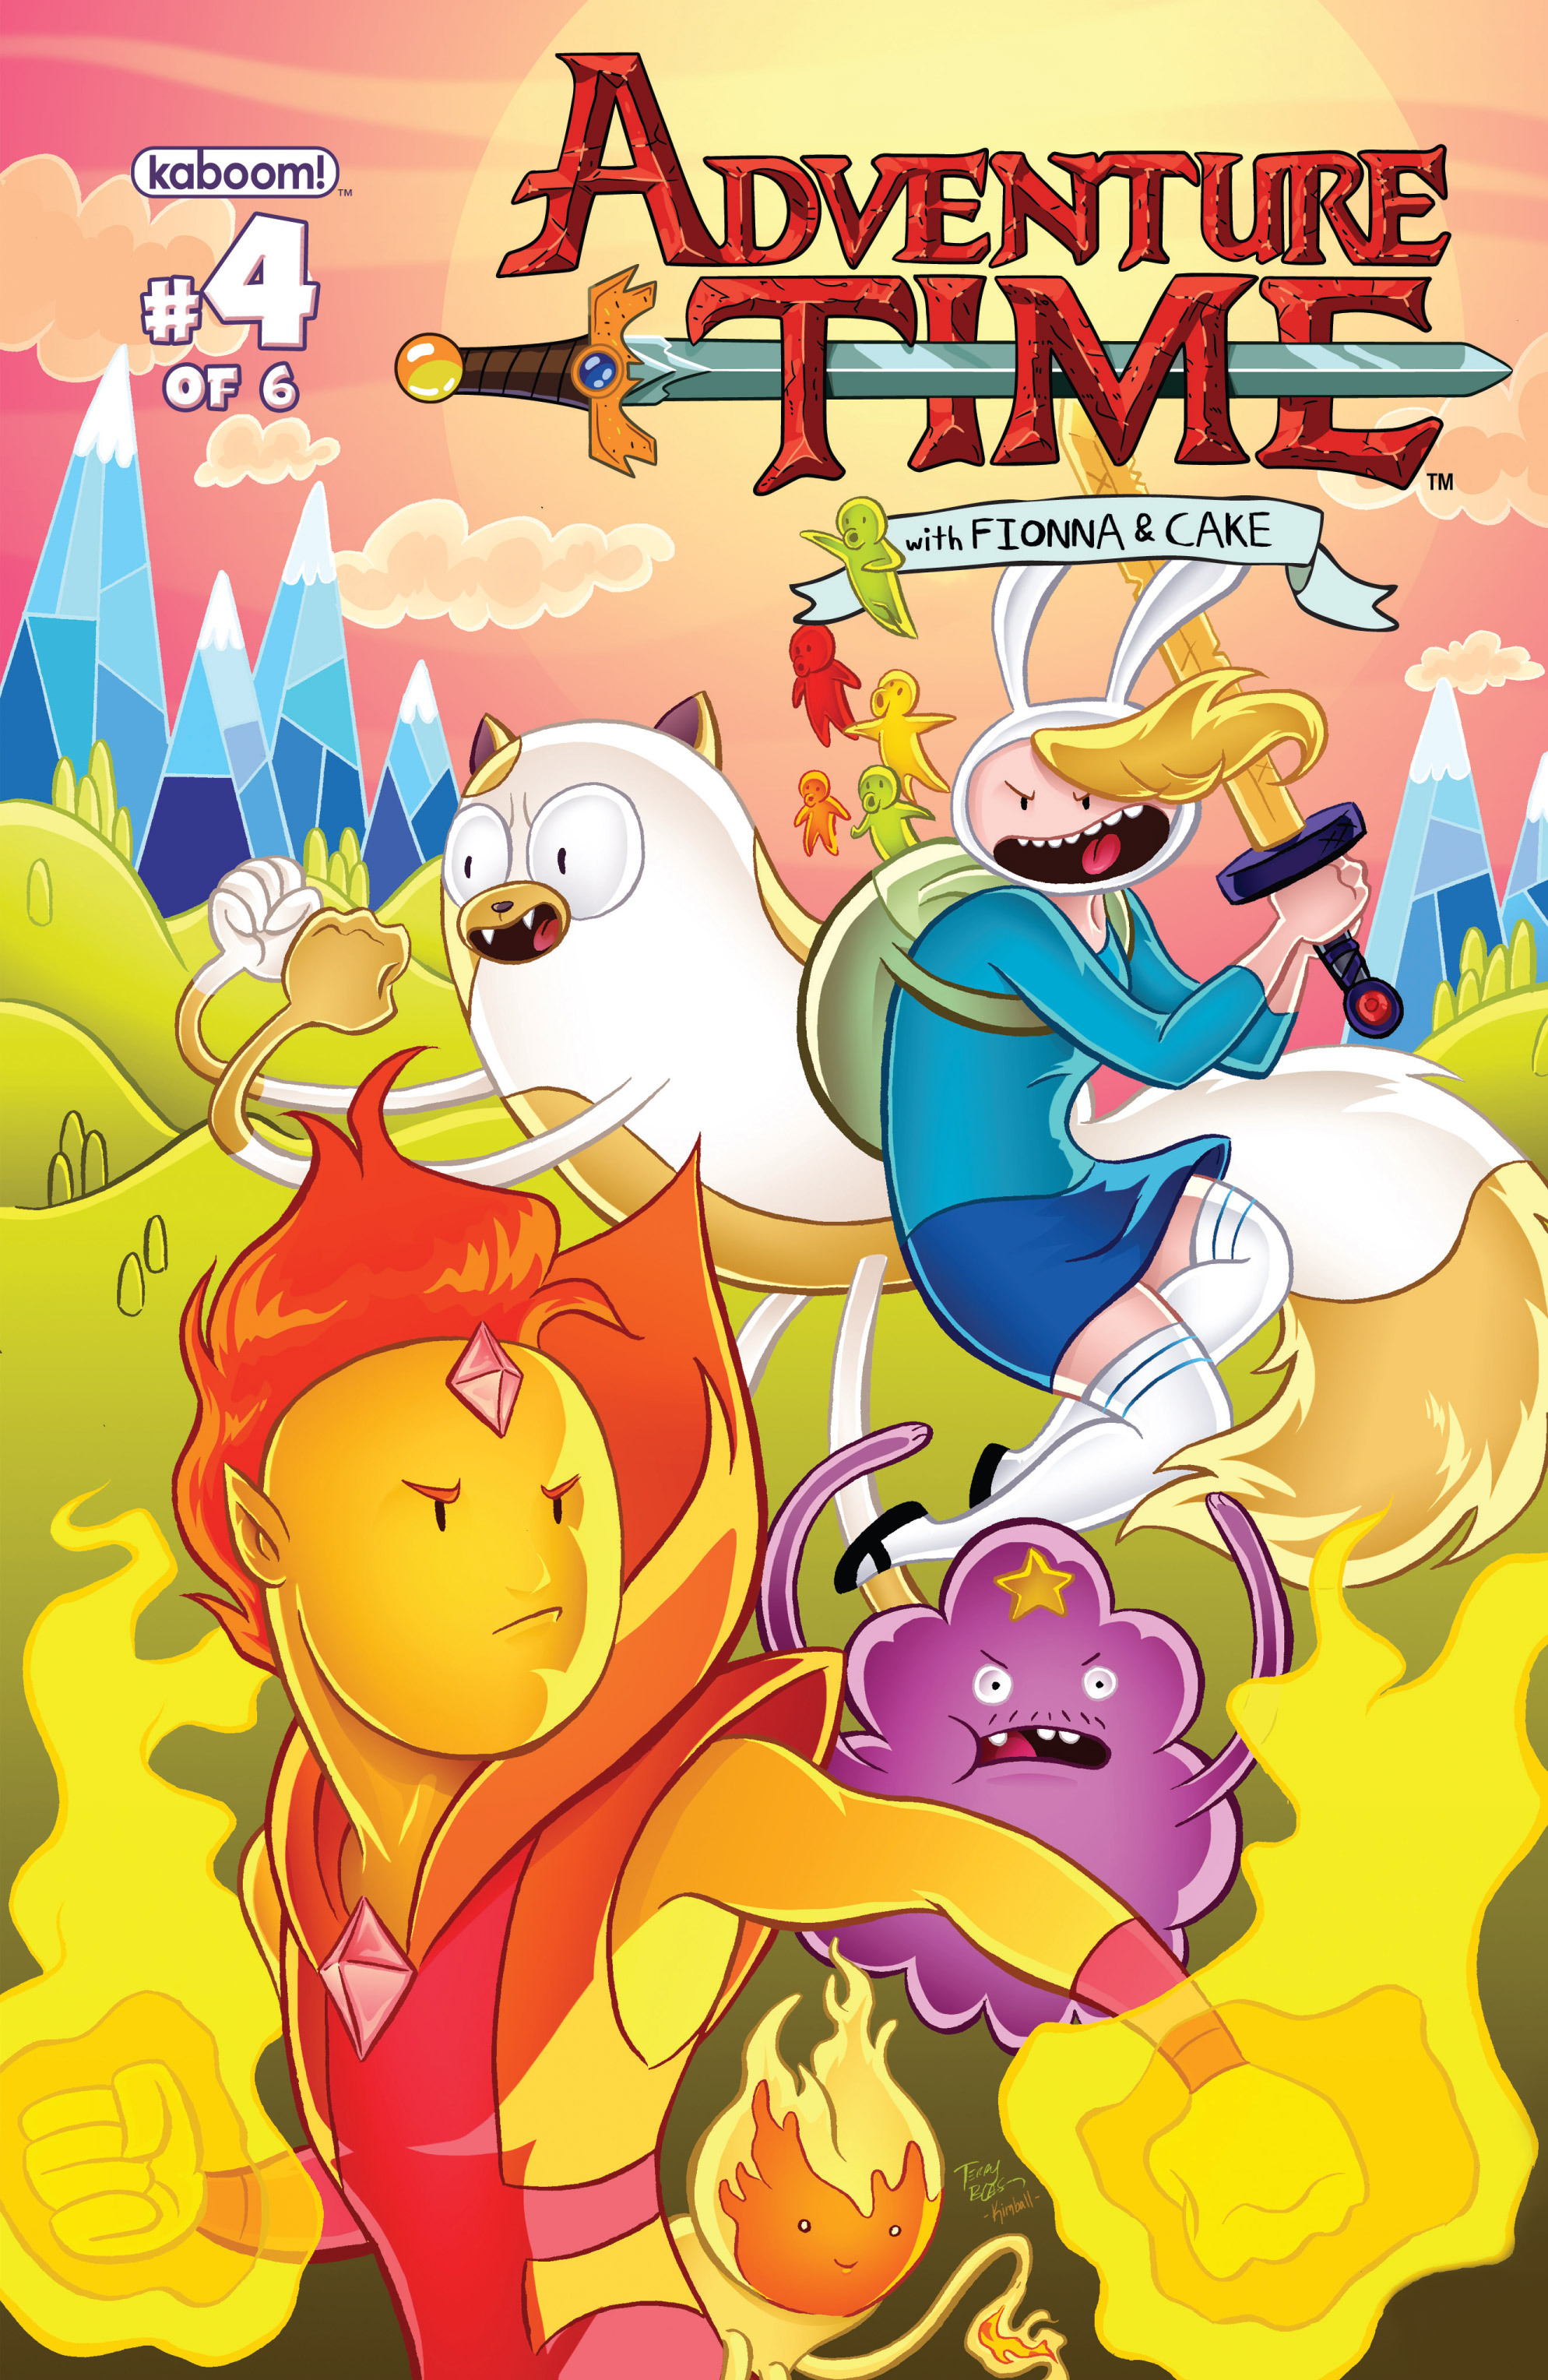 Read online Adventure Time with Fionna & Cake comic -  Issue #4 - 2